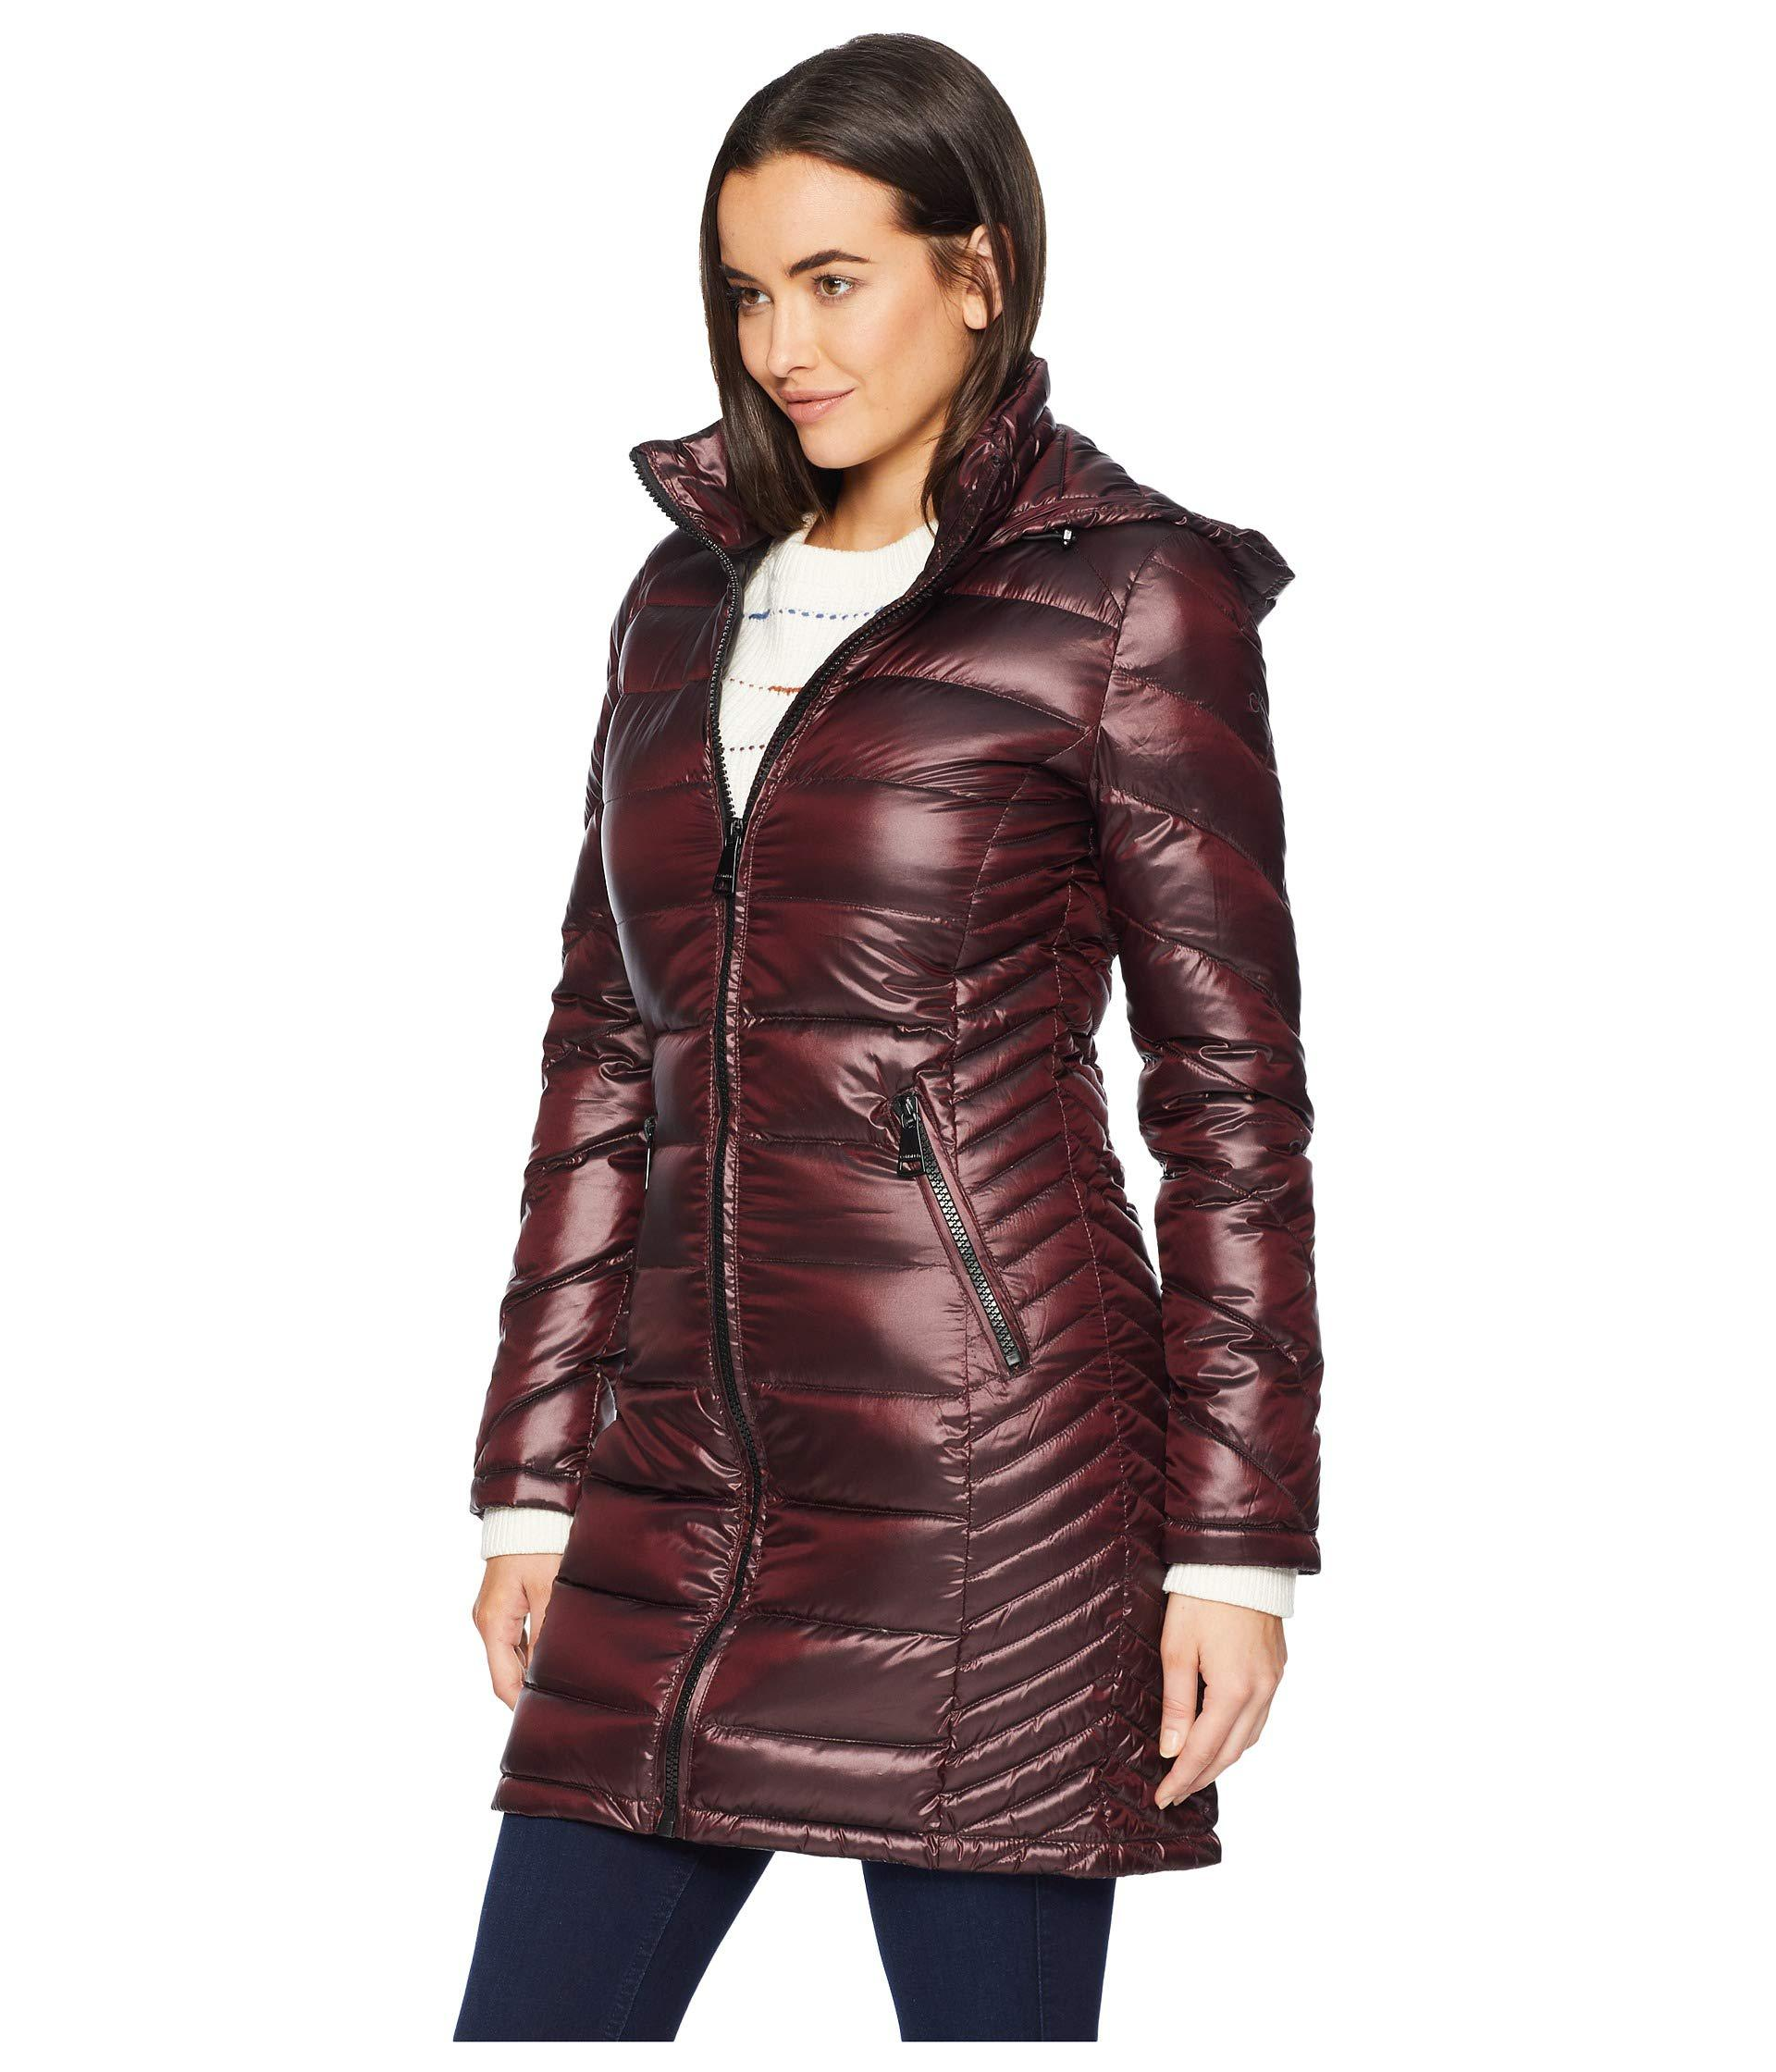 aa3324821c3 Lyst - Calvin Klein Walker Length Packable With Chunky Zipper Hardware (jet  Black) Women s Coat in Red